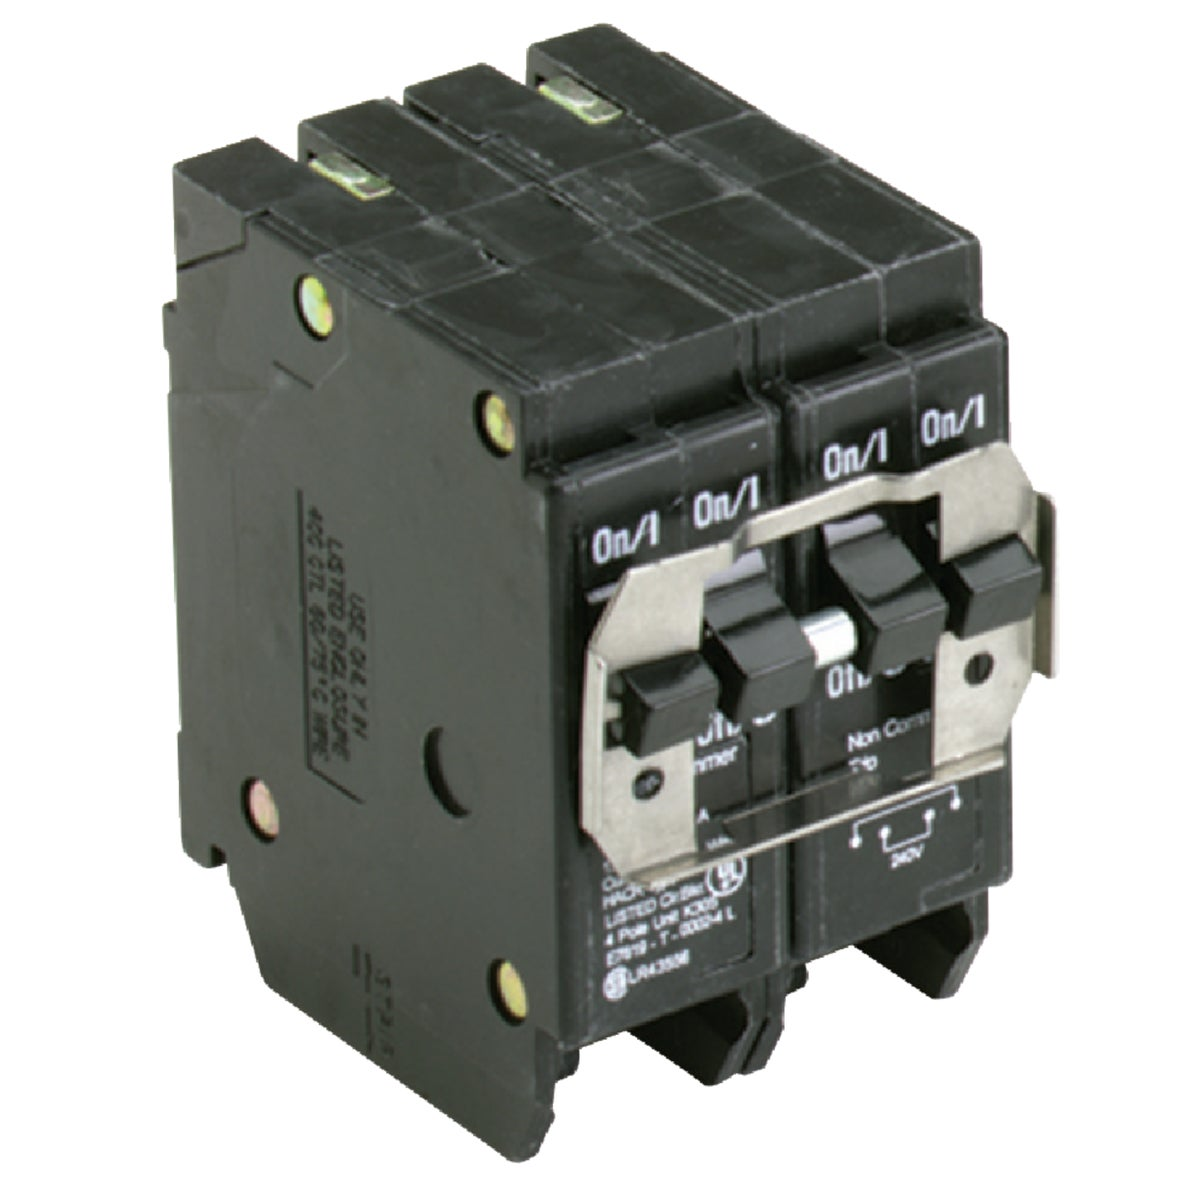 30A/40A CIRCUIT BREAKER - BQ230240 by Eaton Corporation